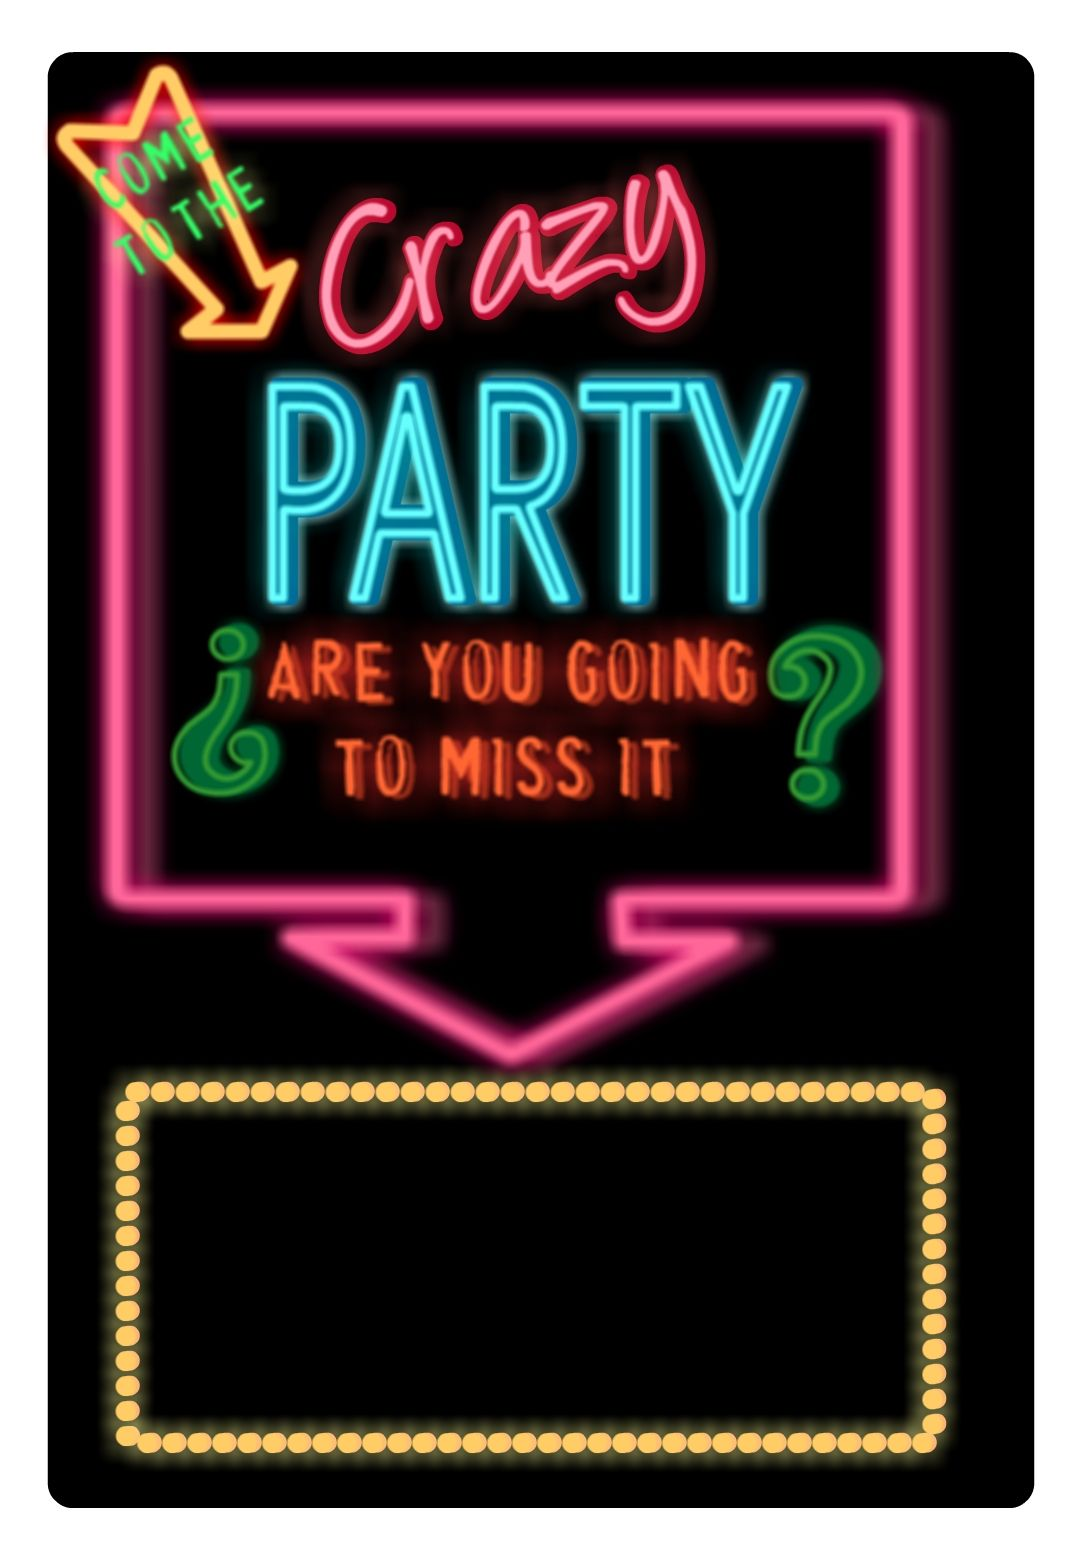 picture about Free Printable Glow Party Invitations referred to as Disco Social gathering Invitation Template (Cost-free Dance bash birthday